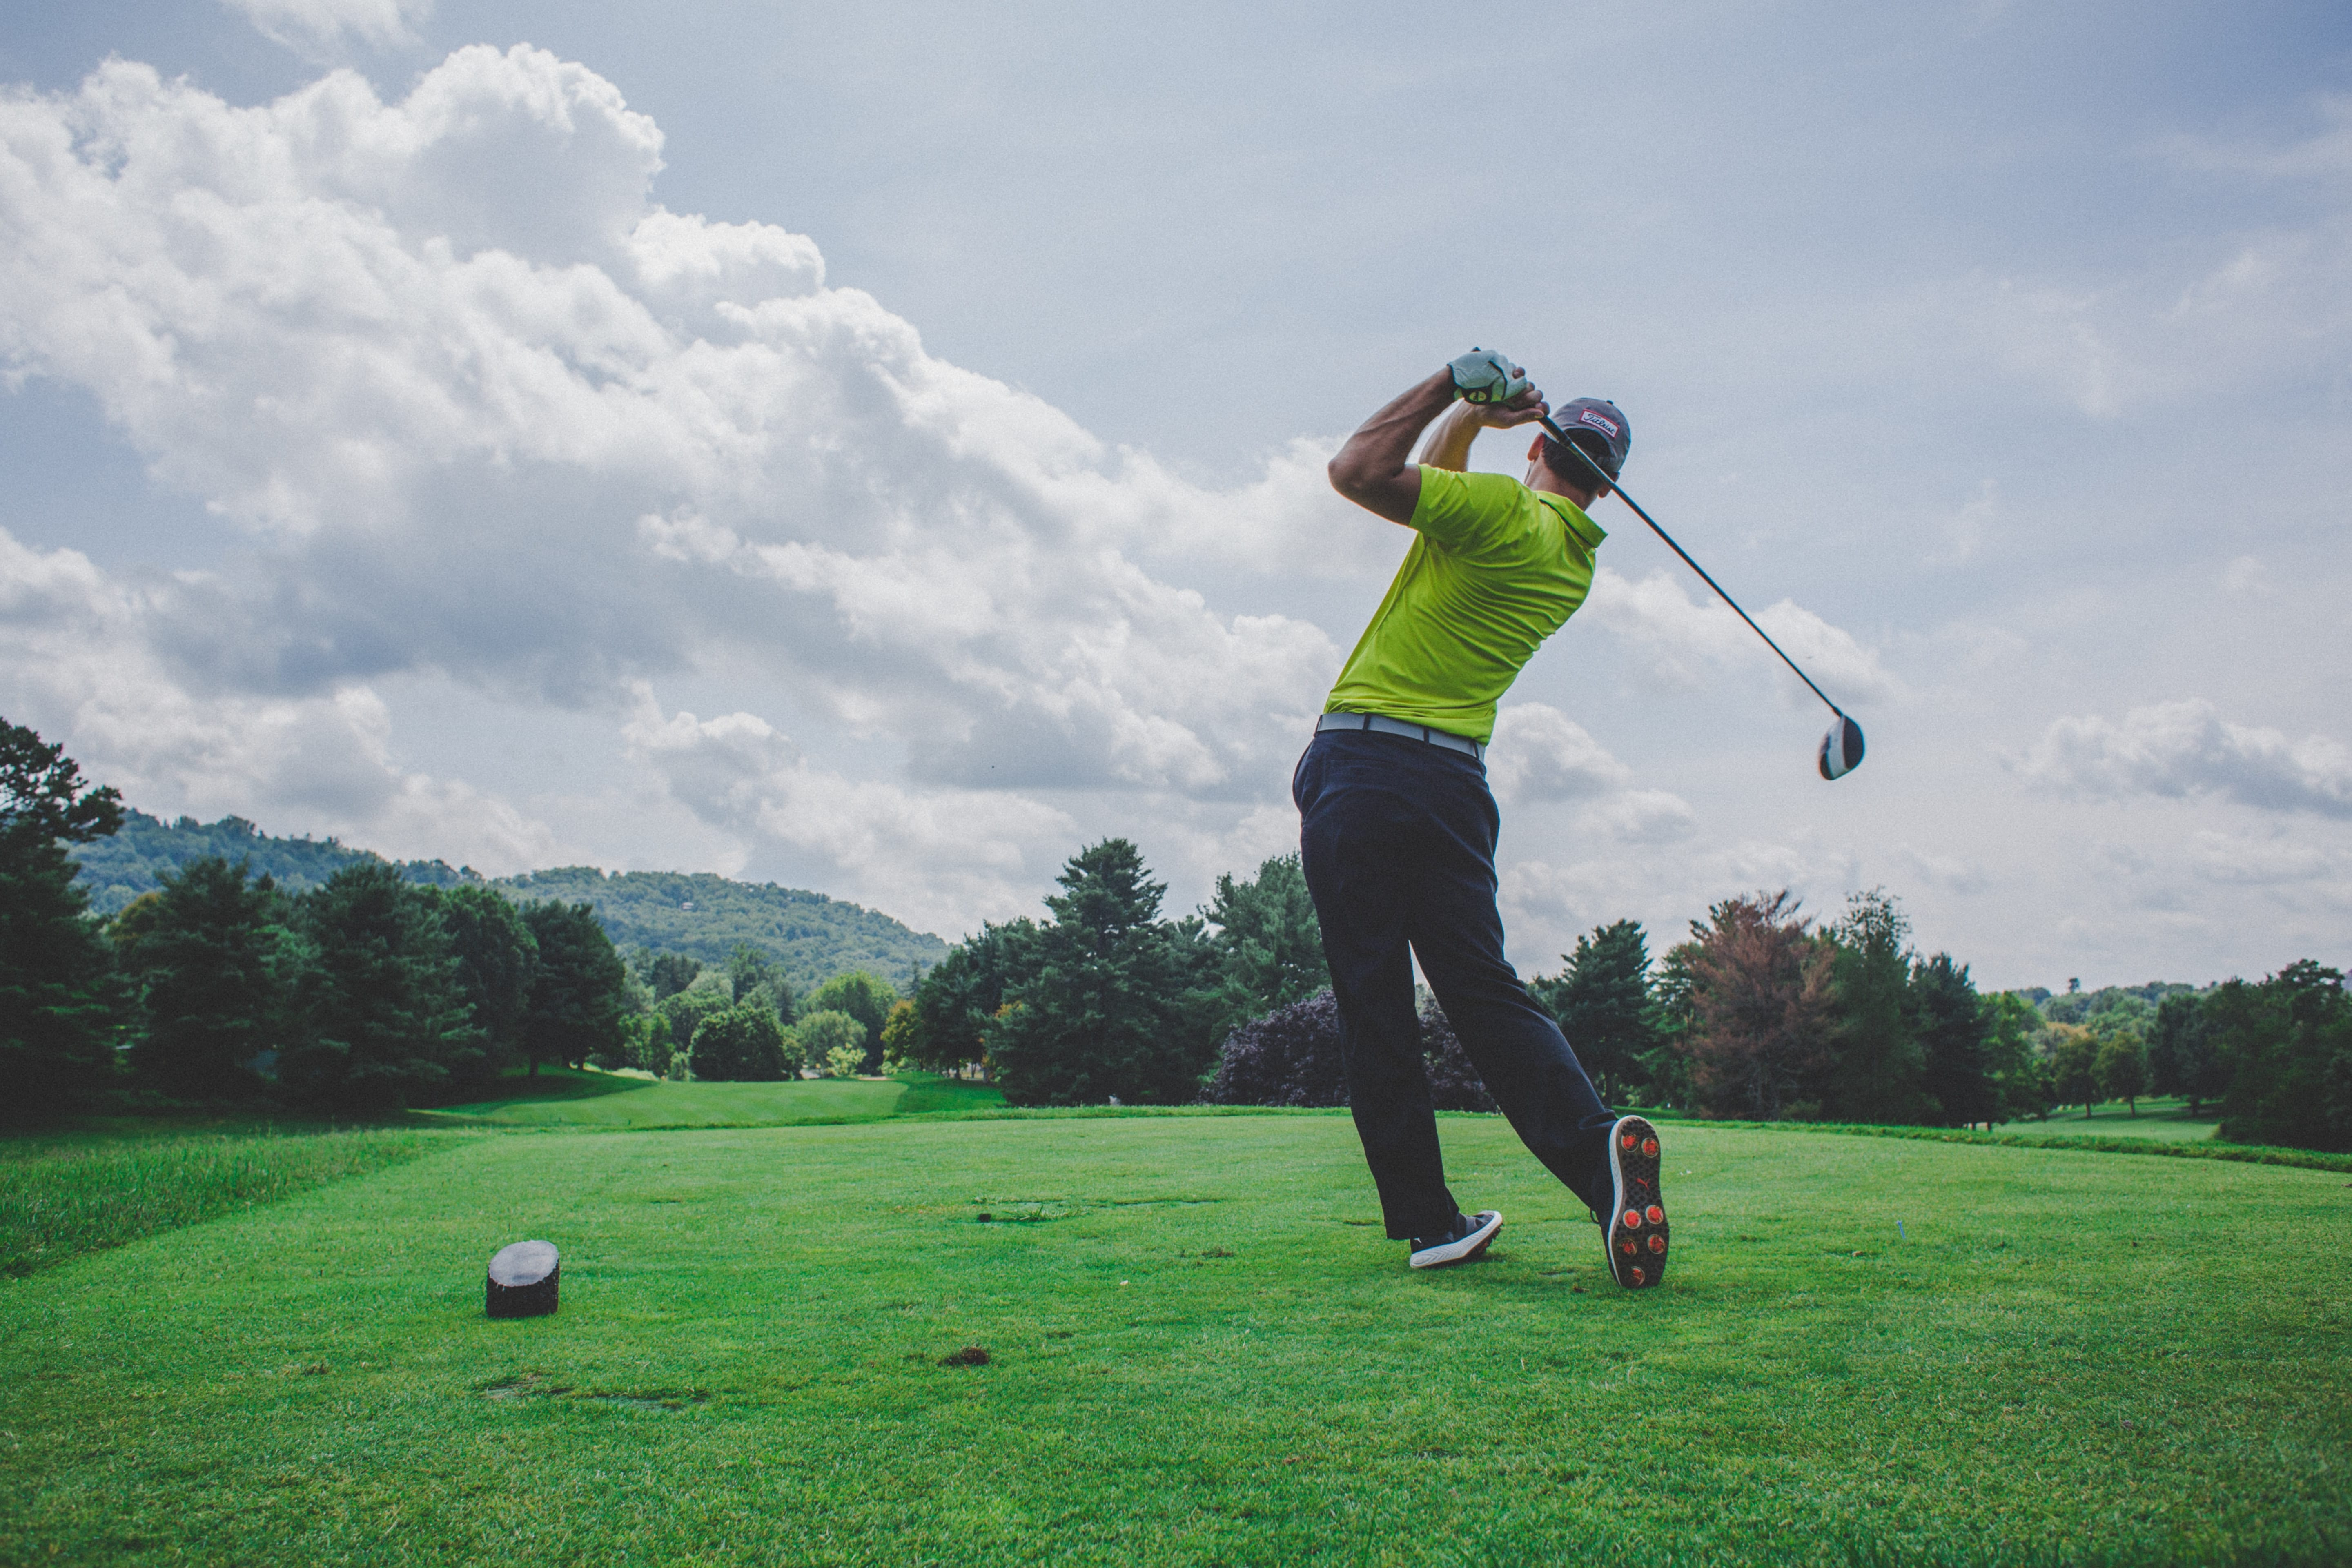 Man hitting golf ball on course; image by Court Cook, via Unsplash.com.